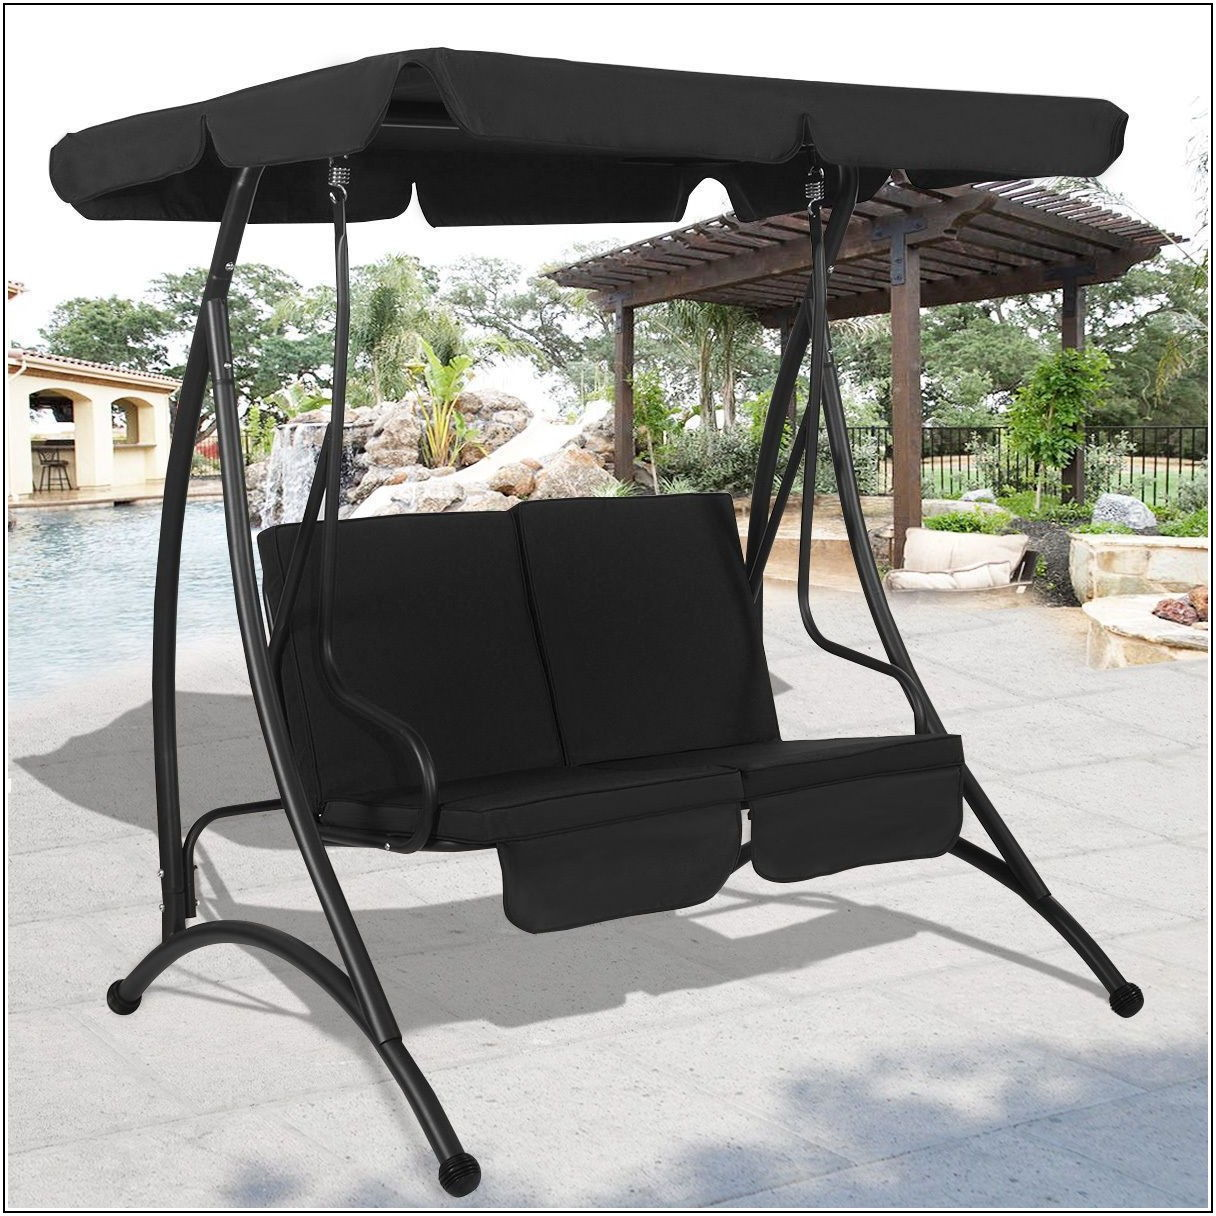 2 Person Patio Swing With Cup Holder